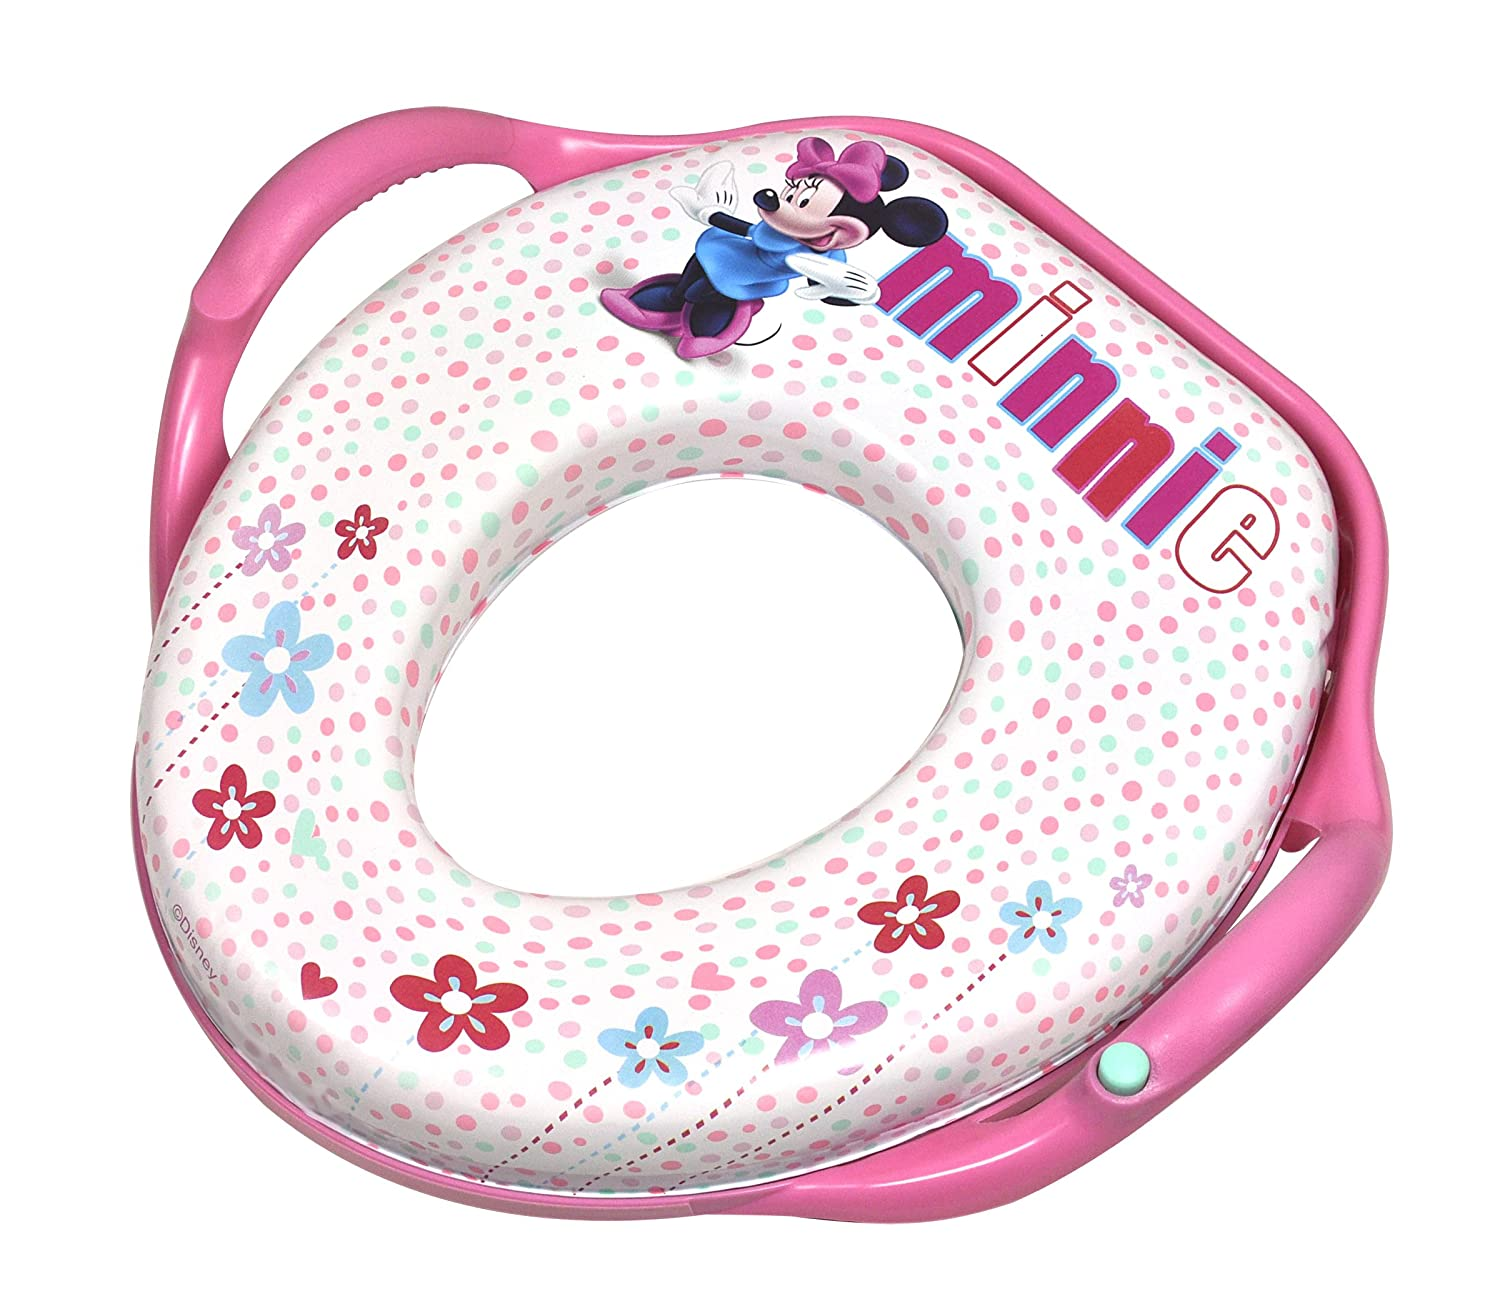 The First Years Magical Sounds Soft Potty Seat